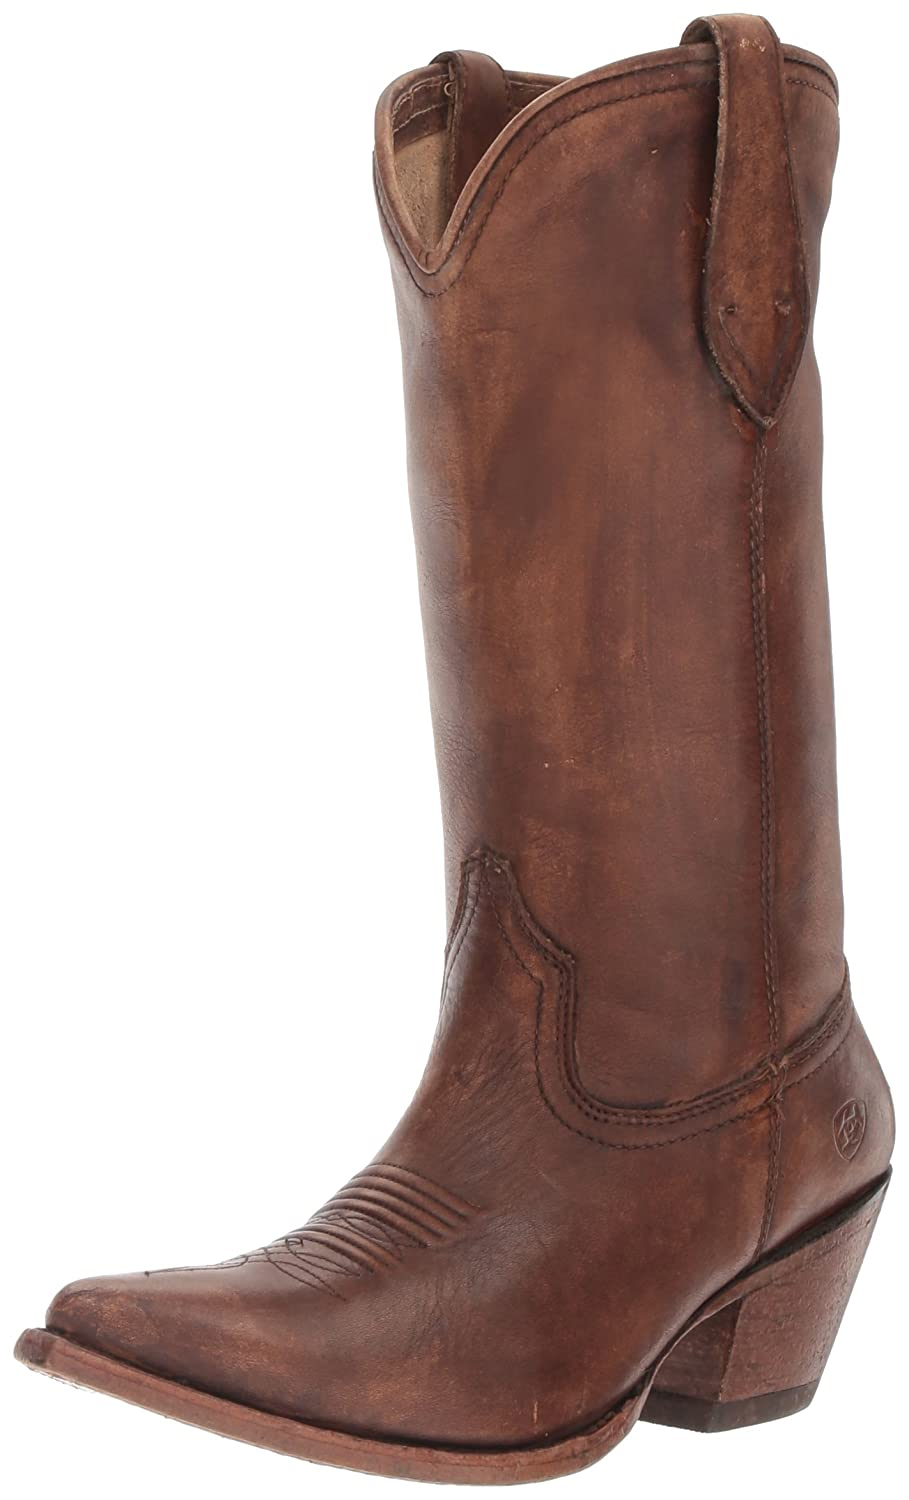 Ariat Women's Josefina Western Cowboy Boot B01L91OE96 9.5 B(M) US|Naturally Distressed Brown